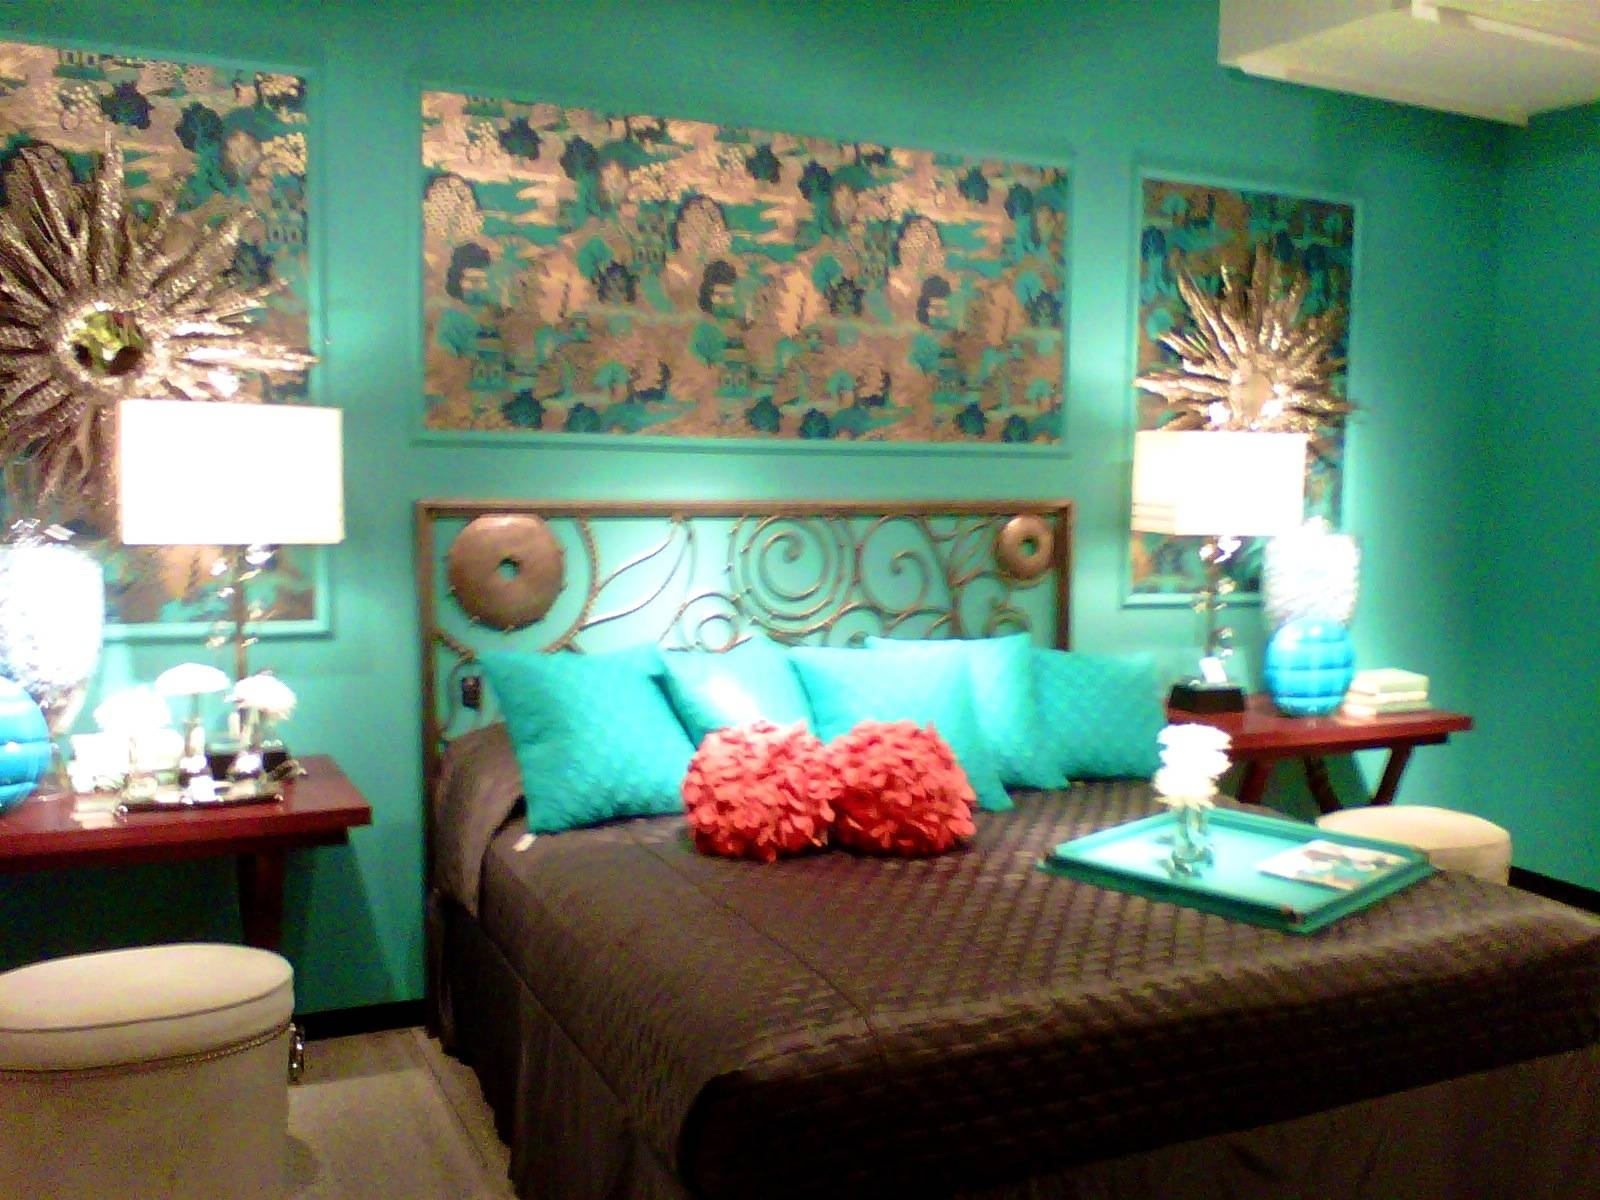 Bathroom : Interesting Living Room Decoration Ideas Delightful Throughout Most Popular Turquoise And Brown Wall Art (View 3 of 25)